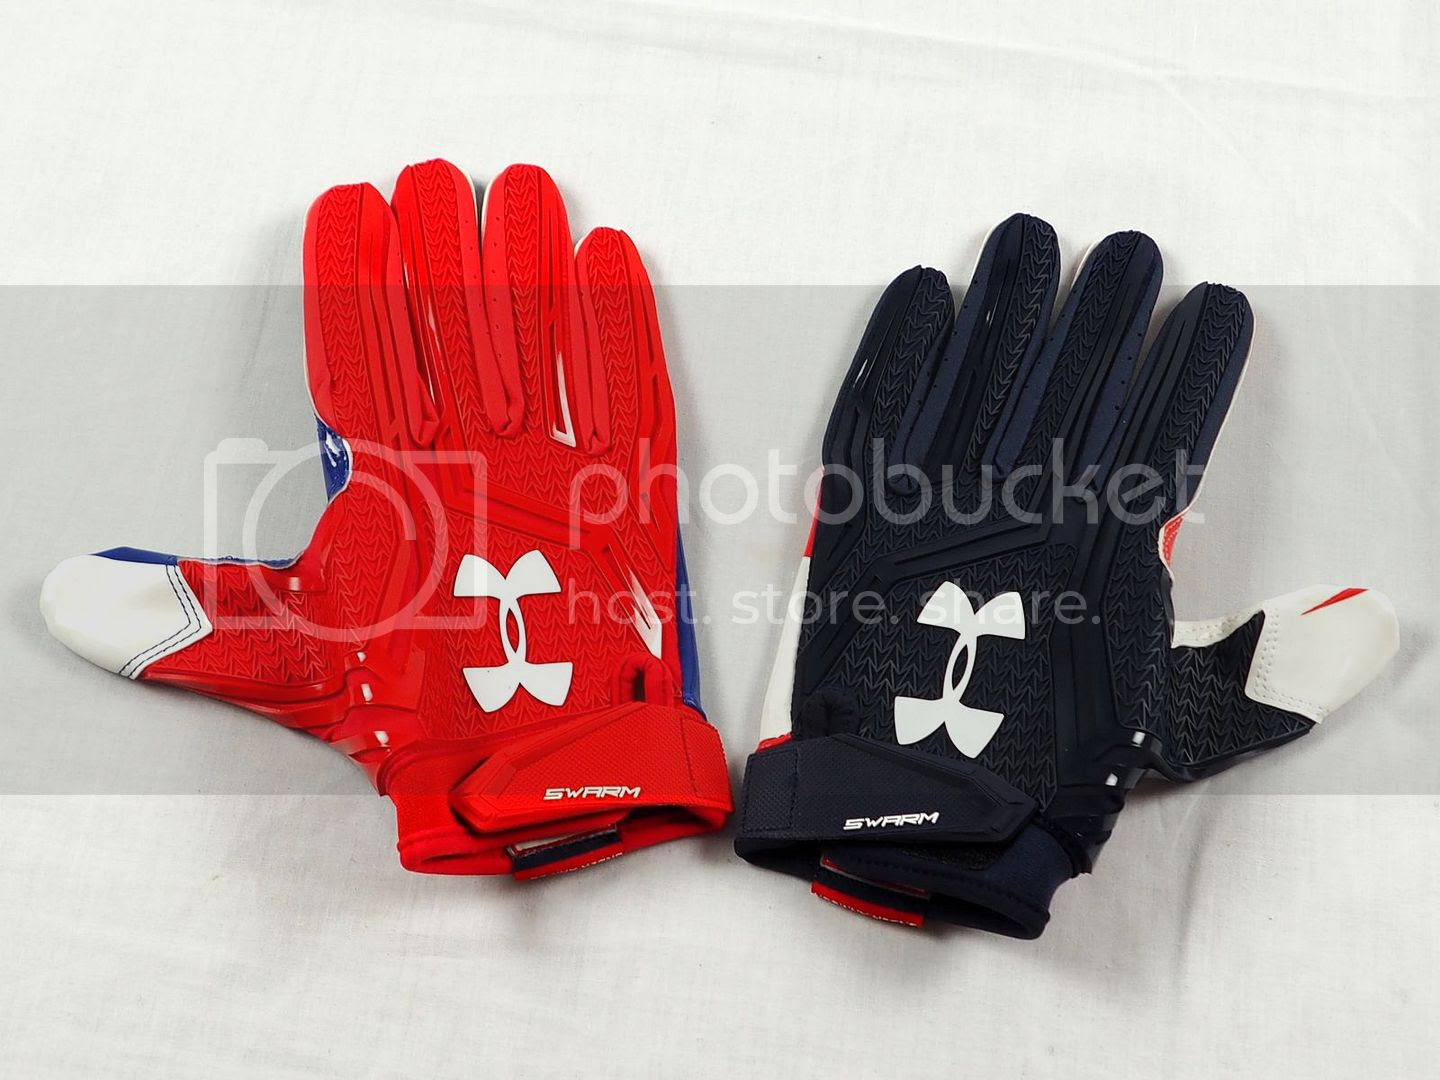 NEW Under Armour Swarm  Red and Navy NFL Receiver Gloves Multiple Sizes  eBay